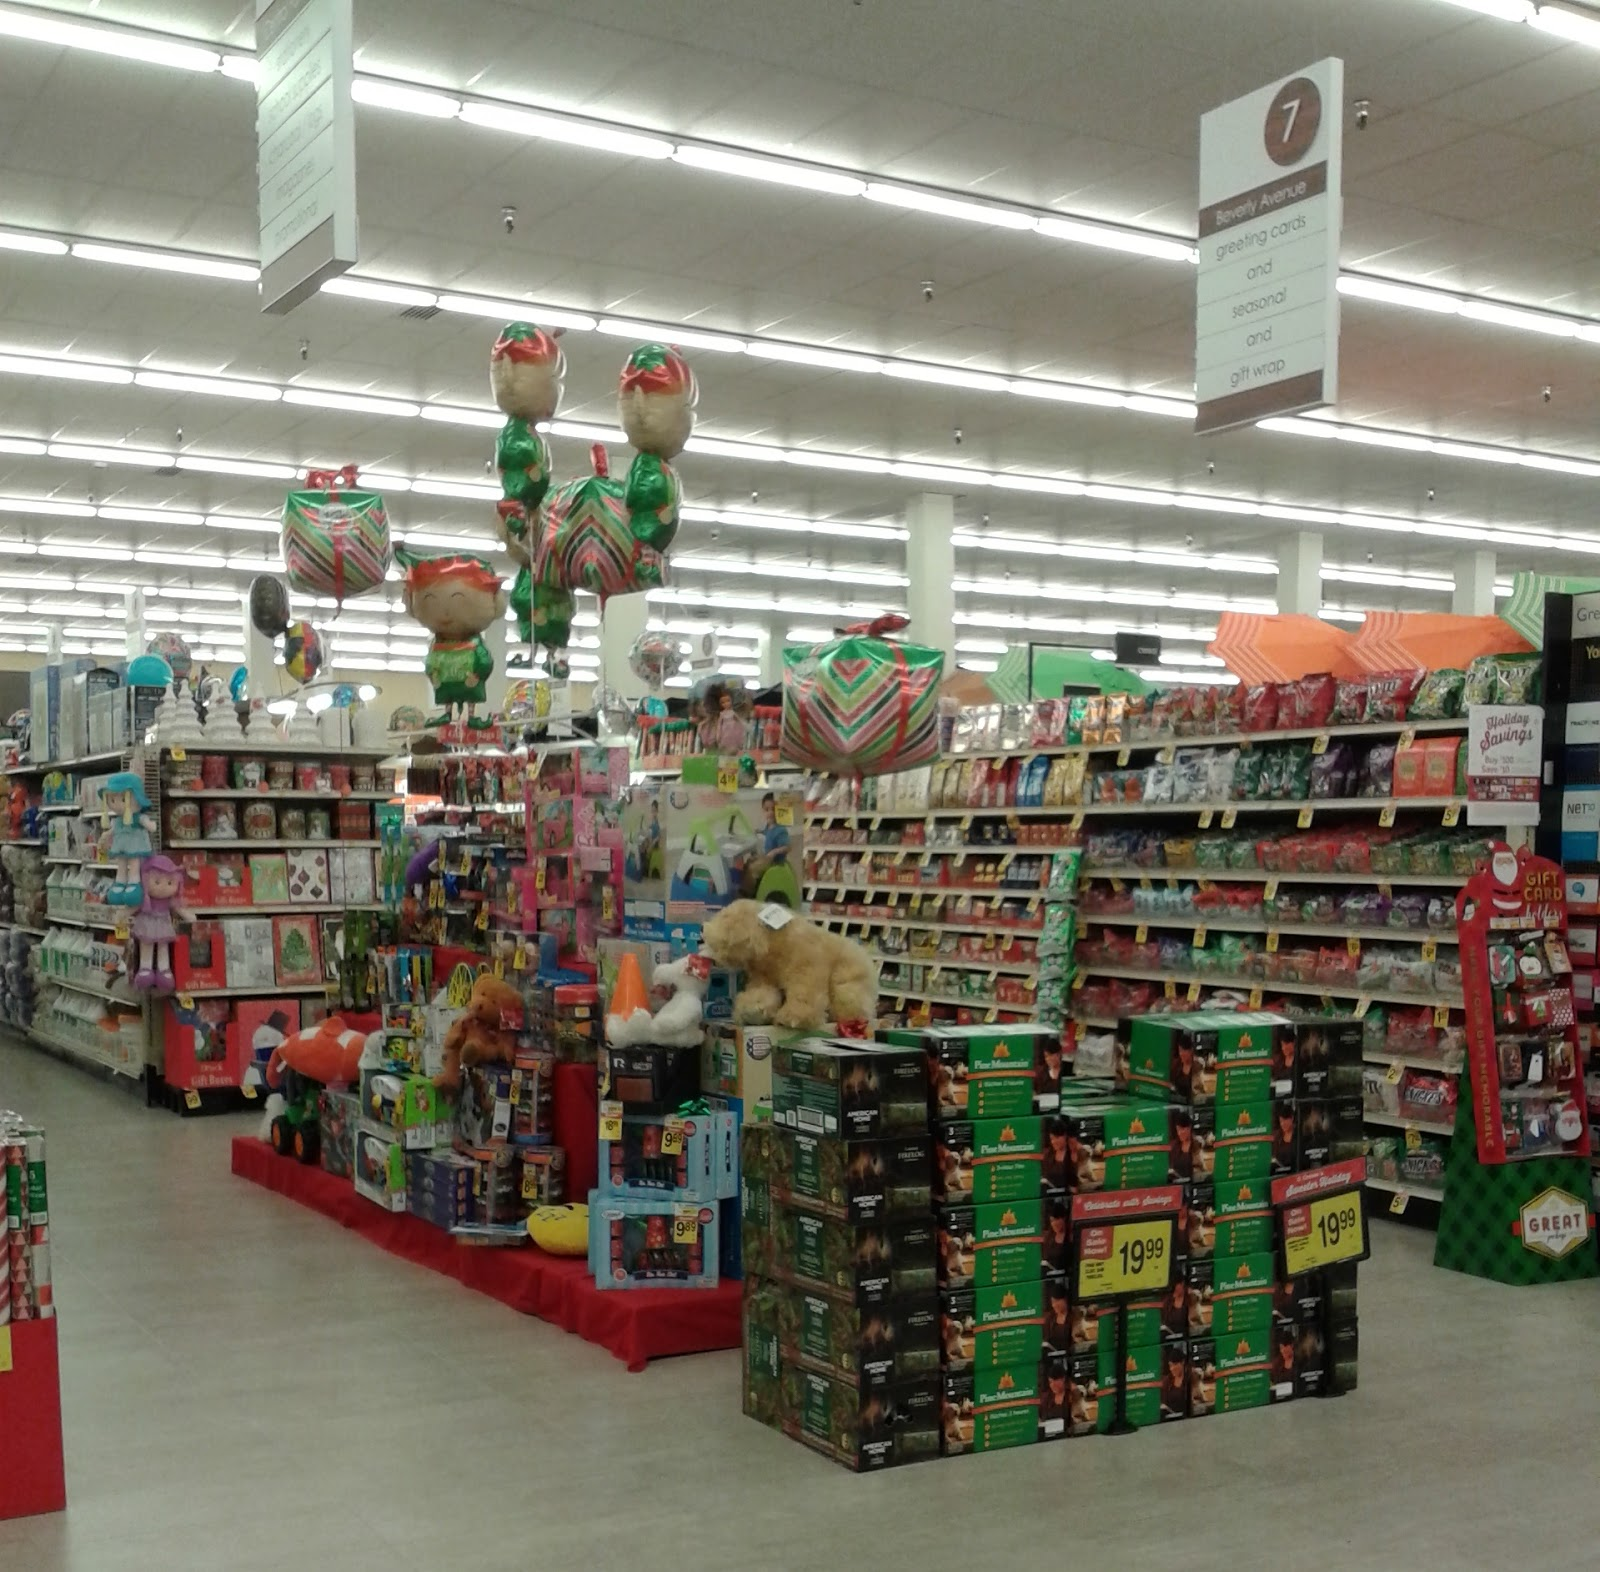 Albertsons Florida Blog: Have Yourself A Merry Little Bit